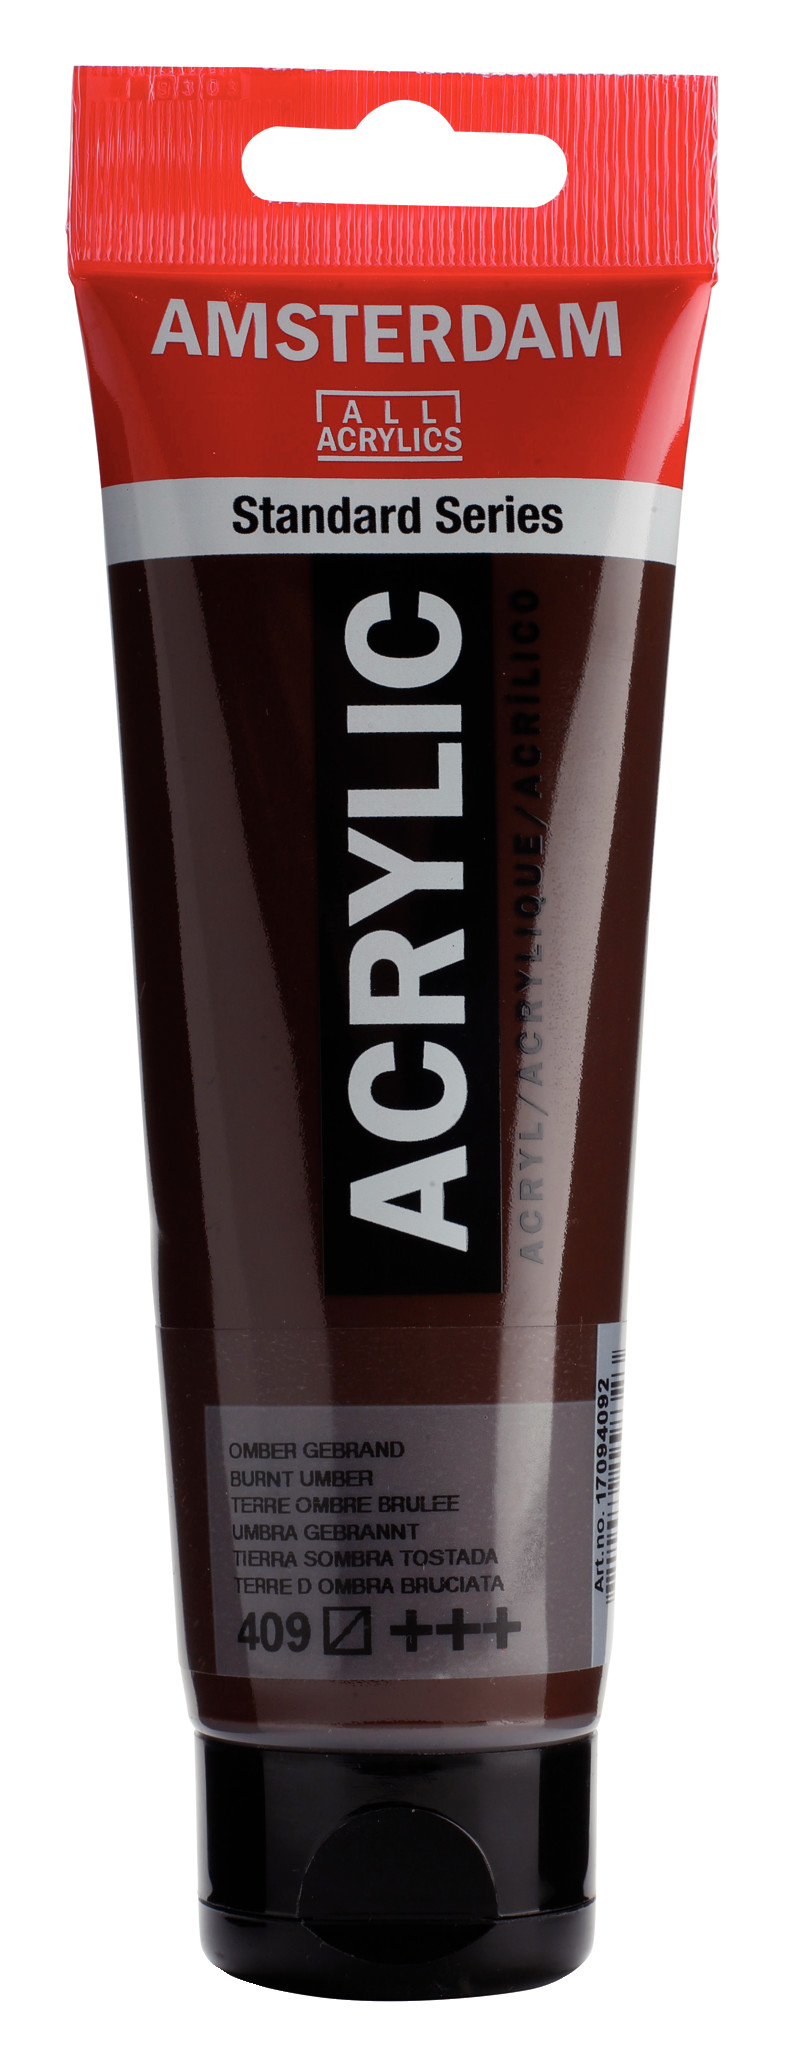 Amsterdam Standard Series Acrylic Tube 120 ml Burnt umber 409